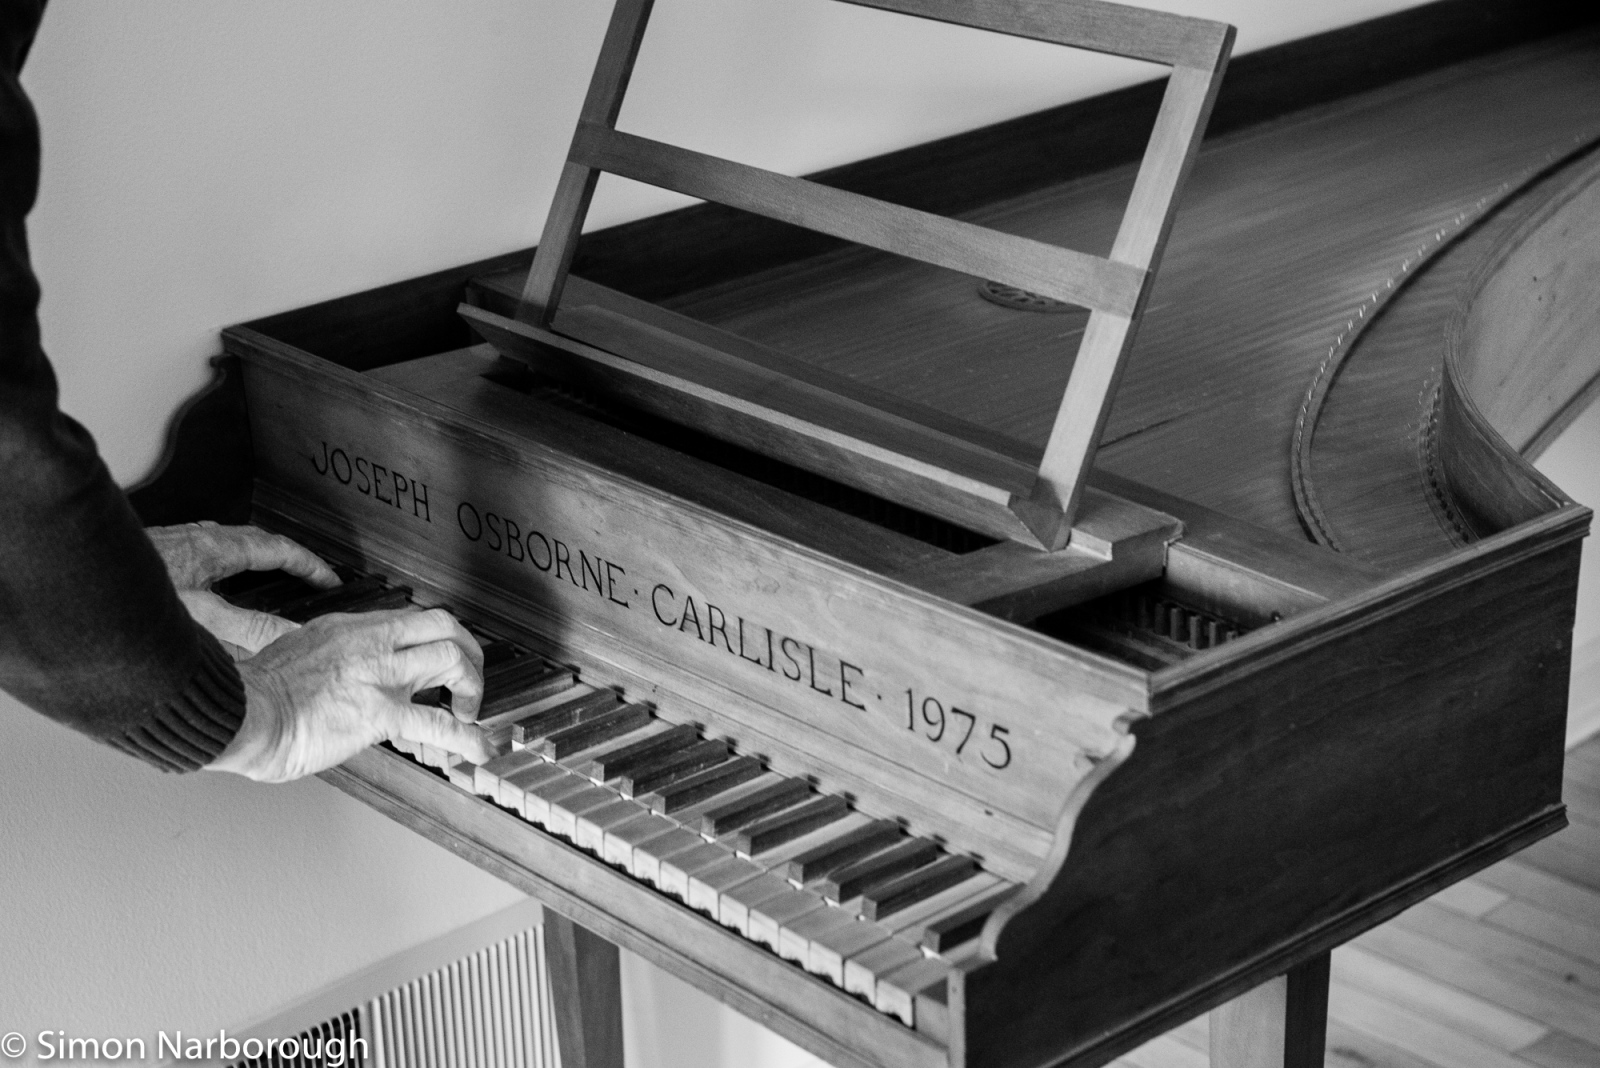 Joseph plays a harpiscord that he built in the 1970's